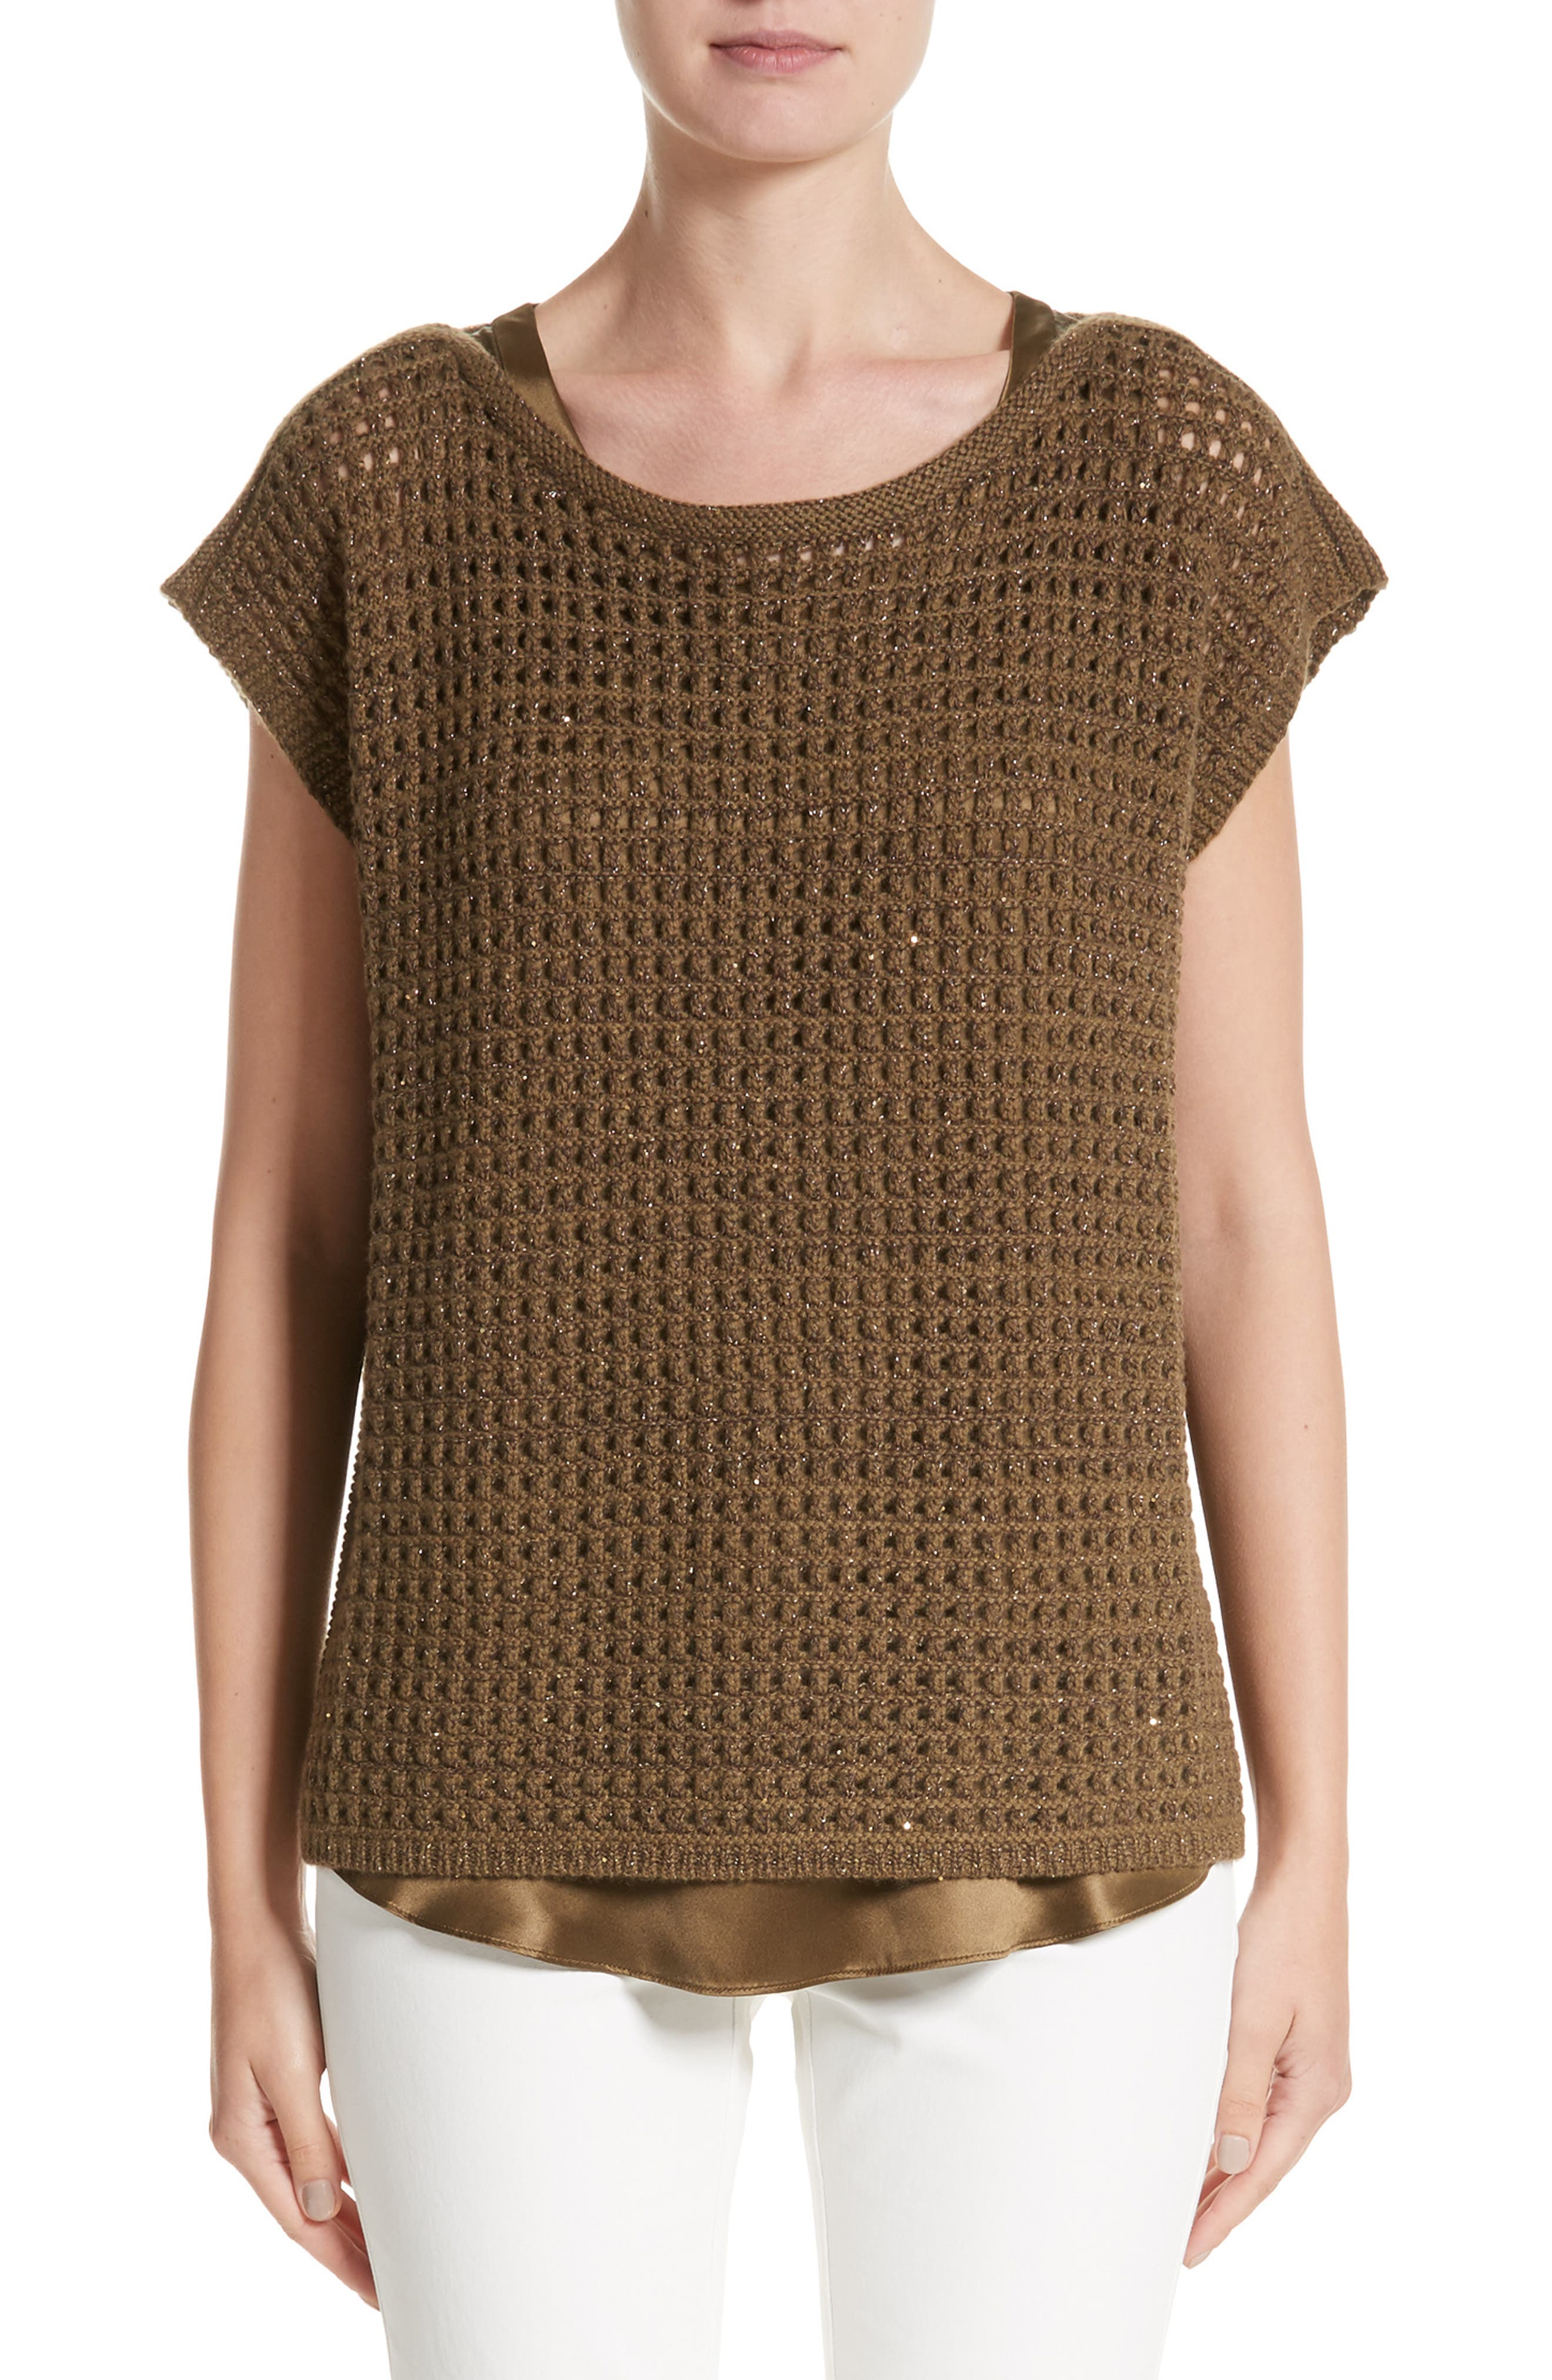 Alternate Image 1 Selected - Lafayette 148 New York Cashmere Open Stitch Sequin Sweater